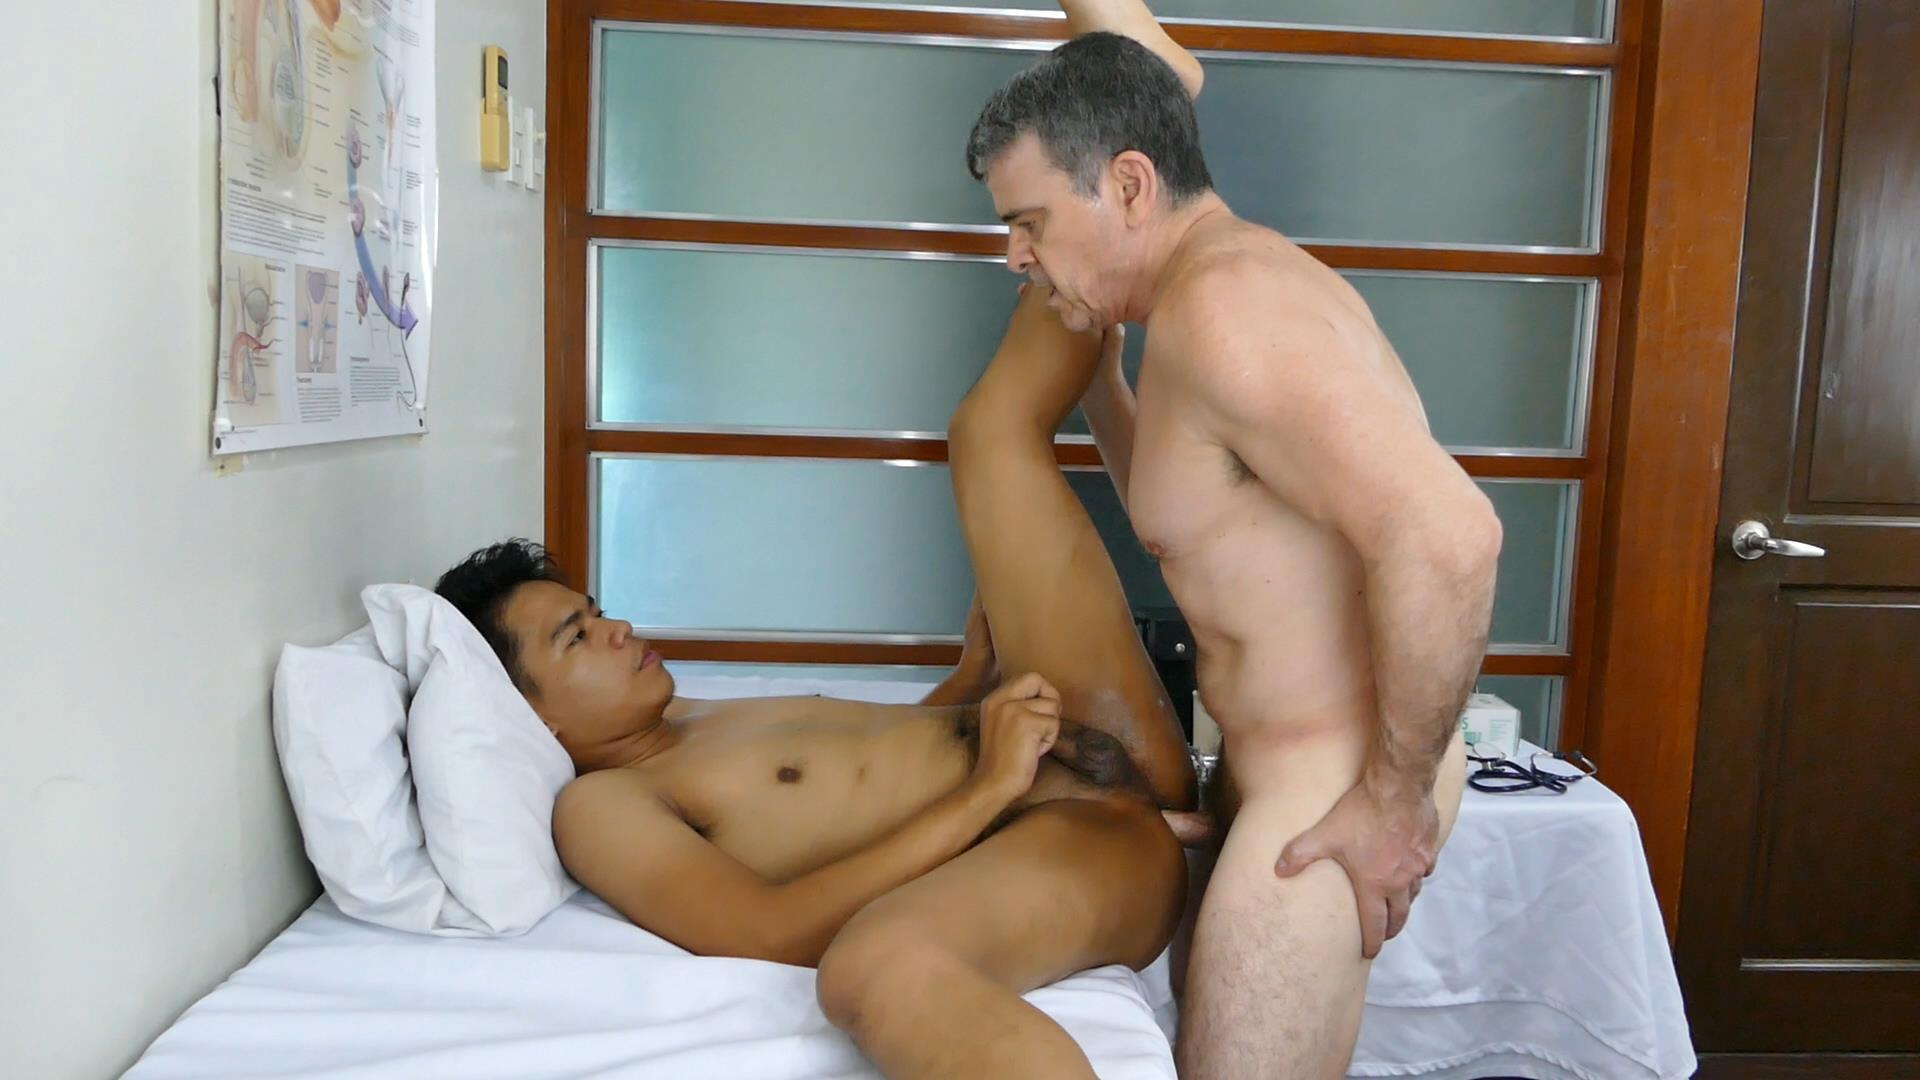 Daddys-Asians-Twink-Gets-Bareback-Fucked-By-Older-Man-22 Horny Asian Boy Takes A Hairy Daddy Dick Raw Up The Ass